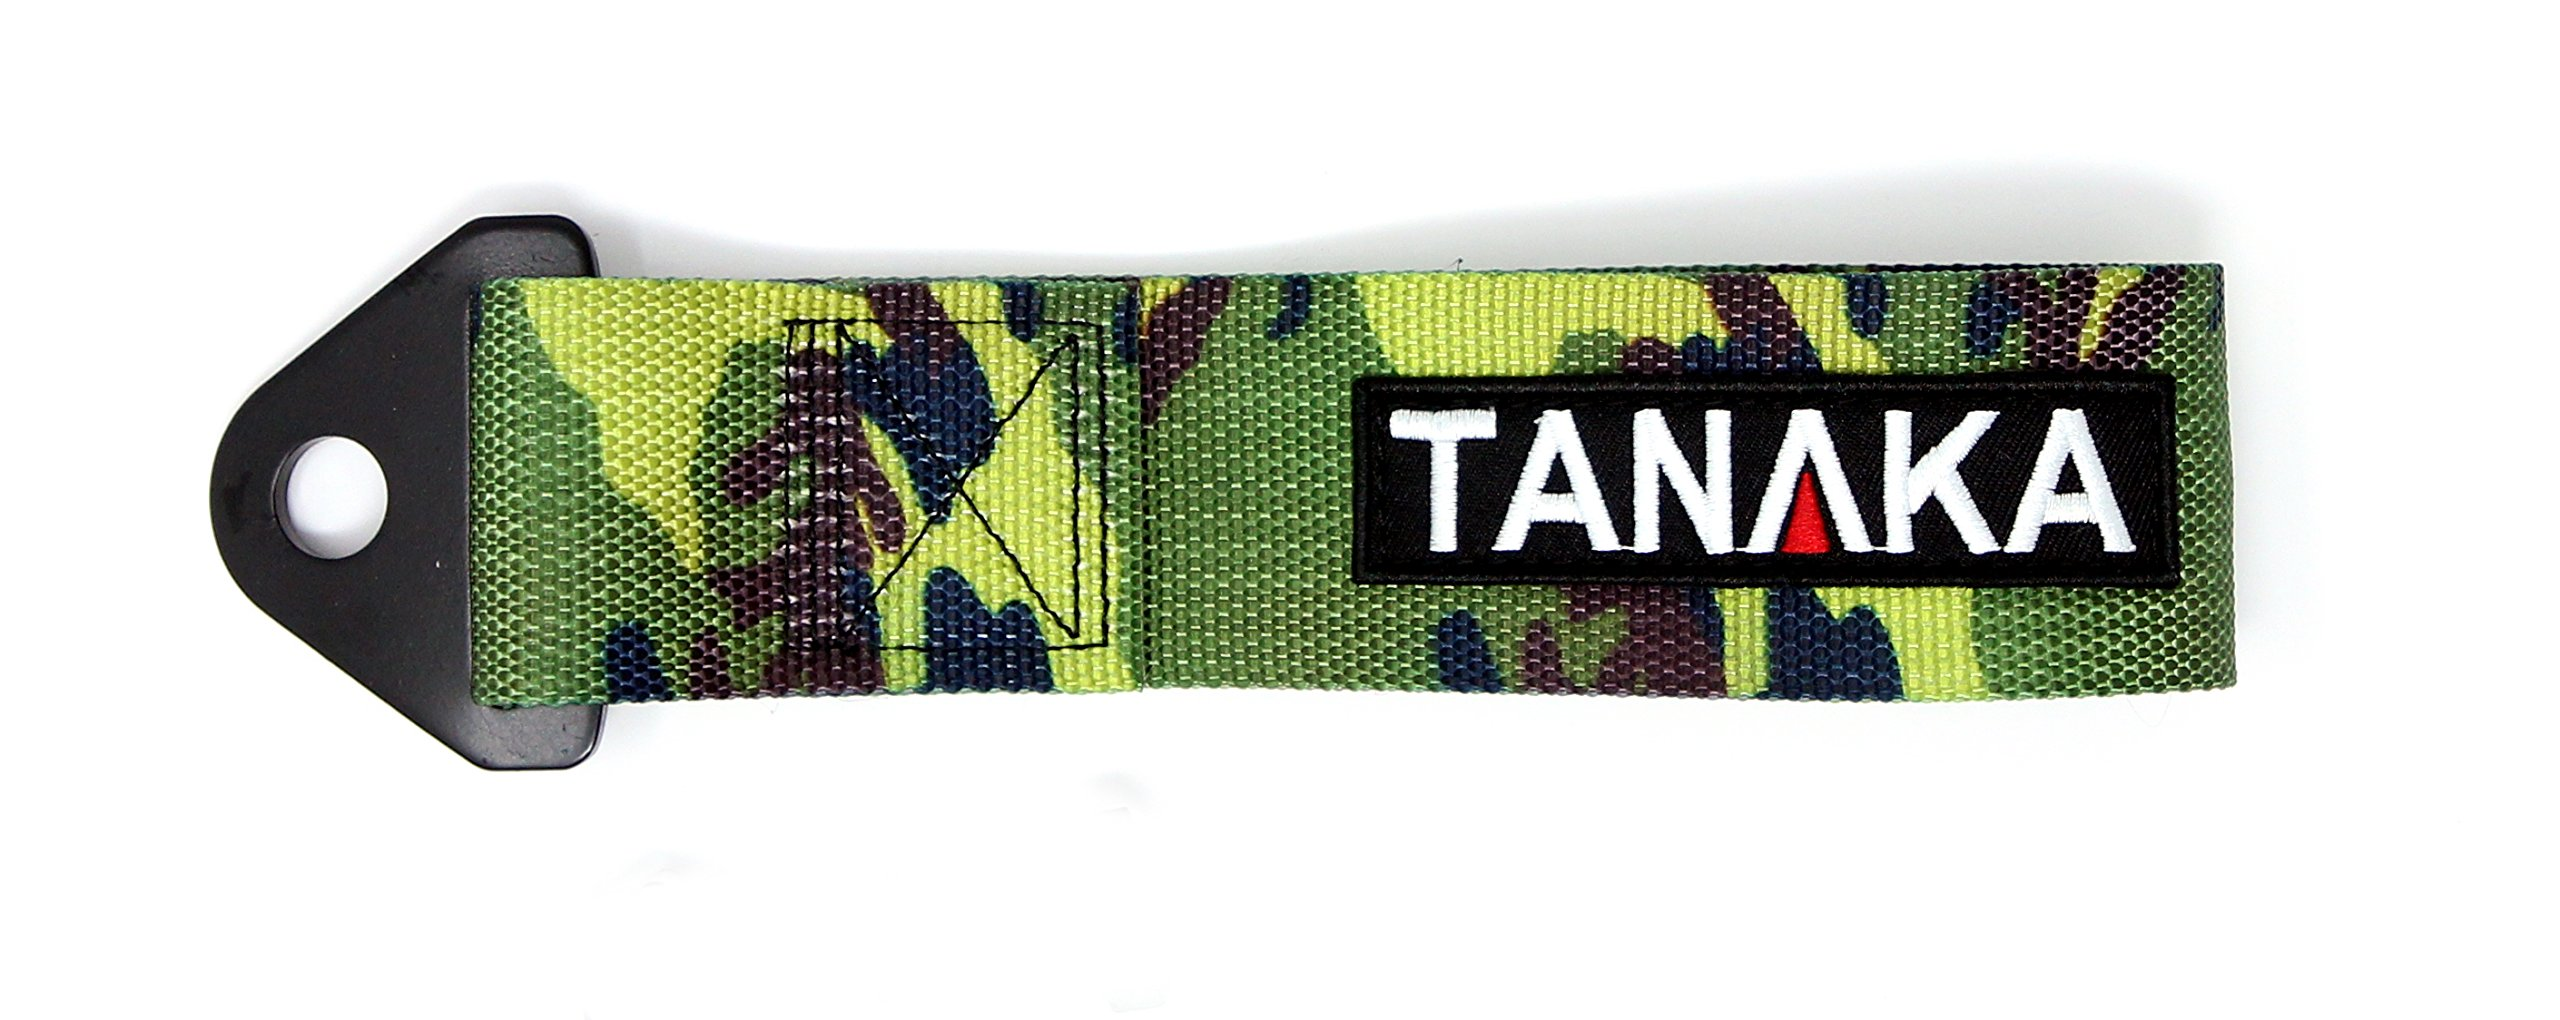 Tanaka High Strength Tow Strap (Camouflage)